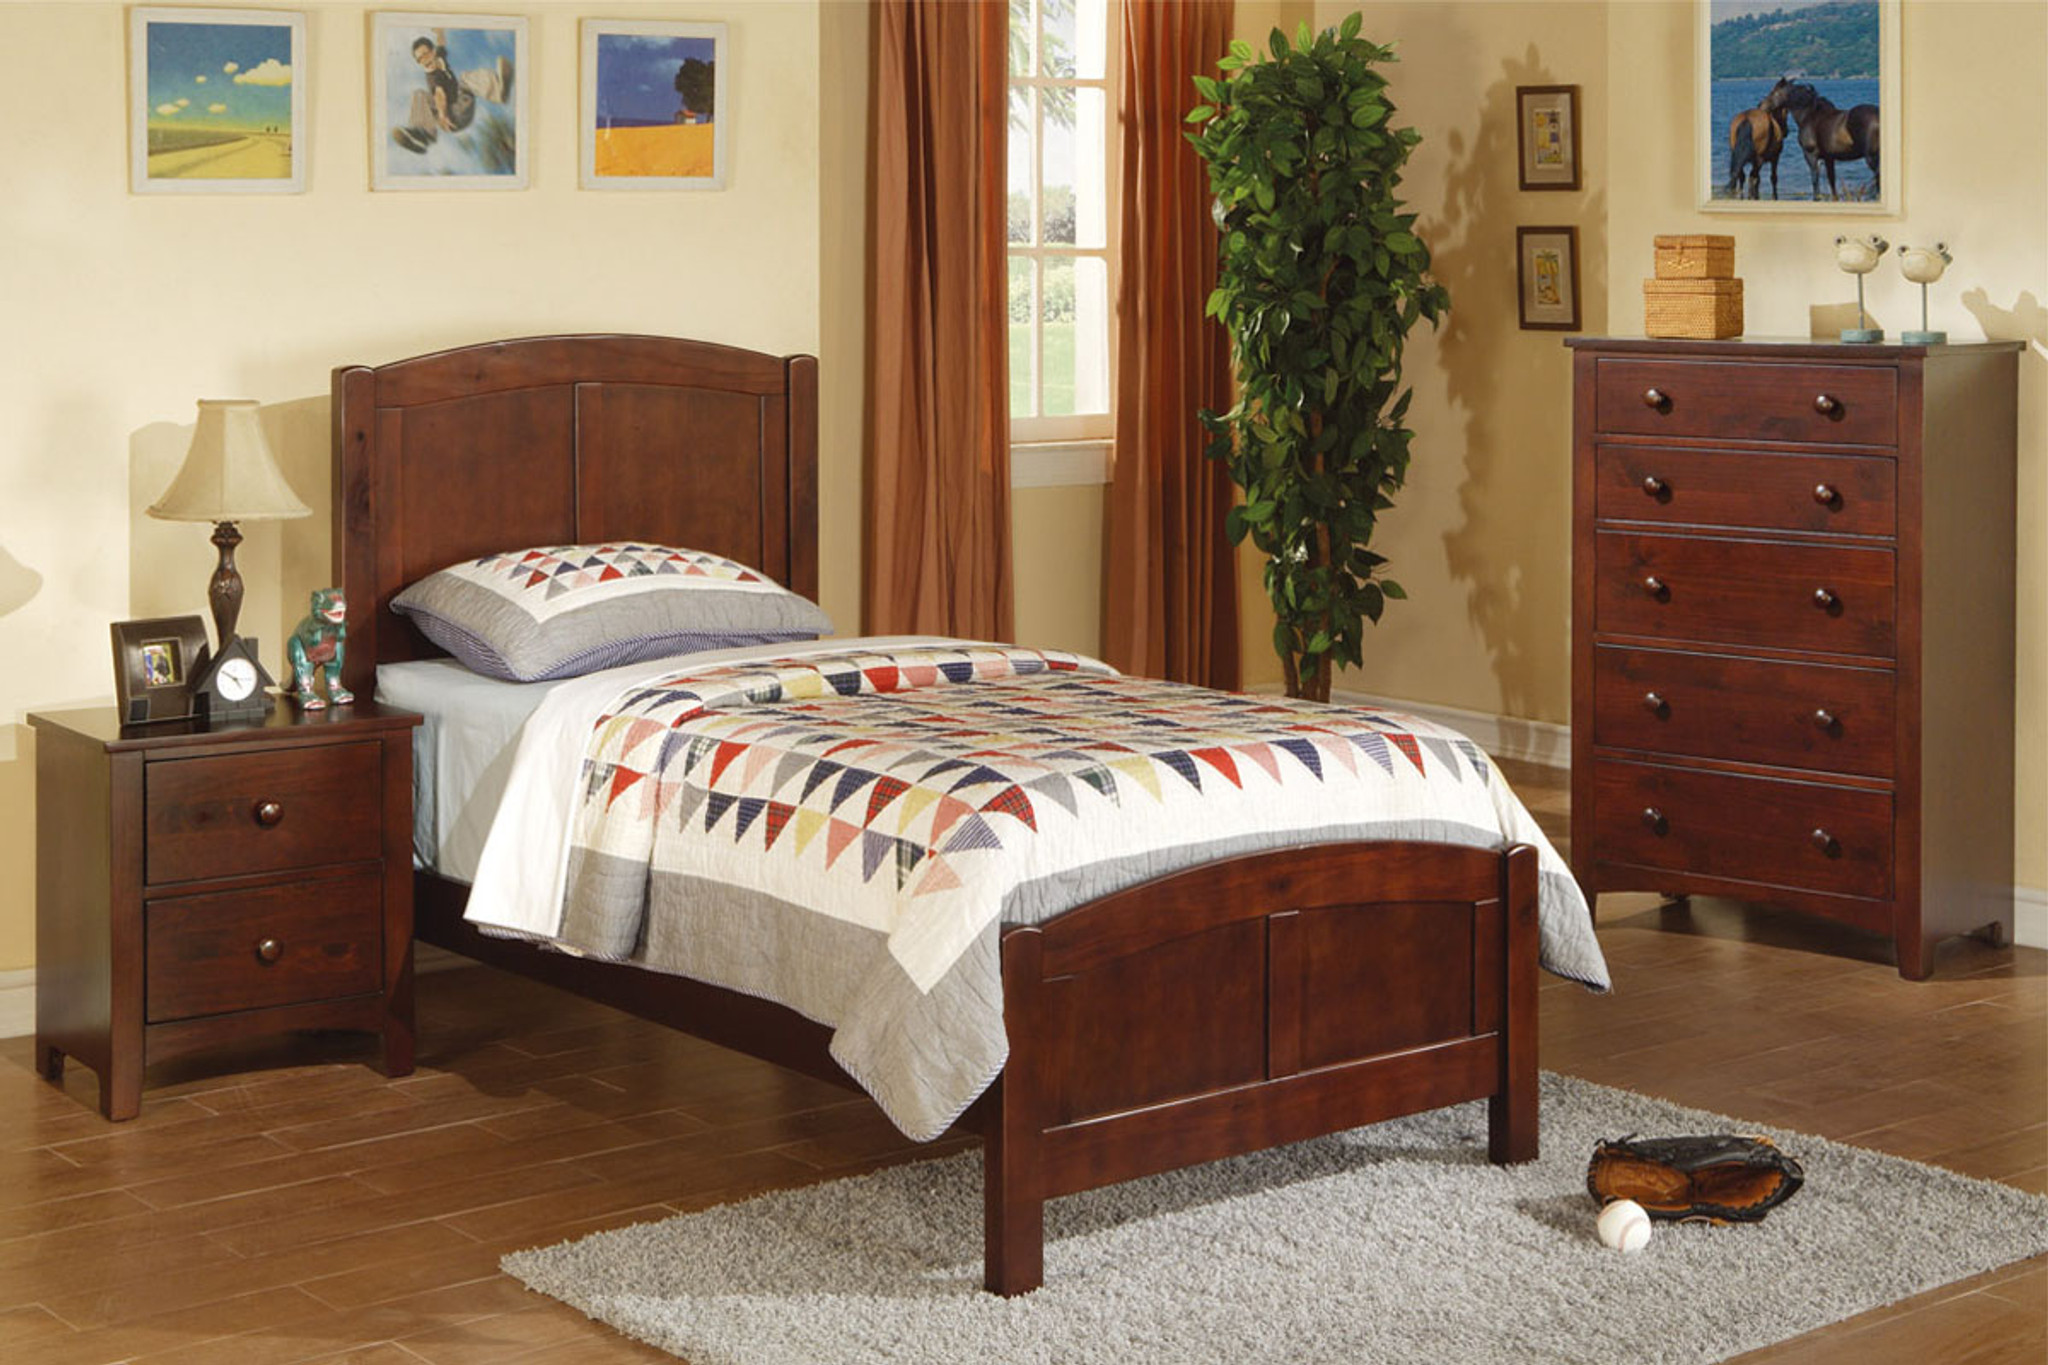 Kassa Mall Home Furniture F9207 F4234 F4235 Twin Bed In Dark Oak Wood Finish